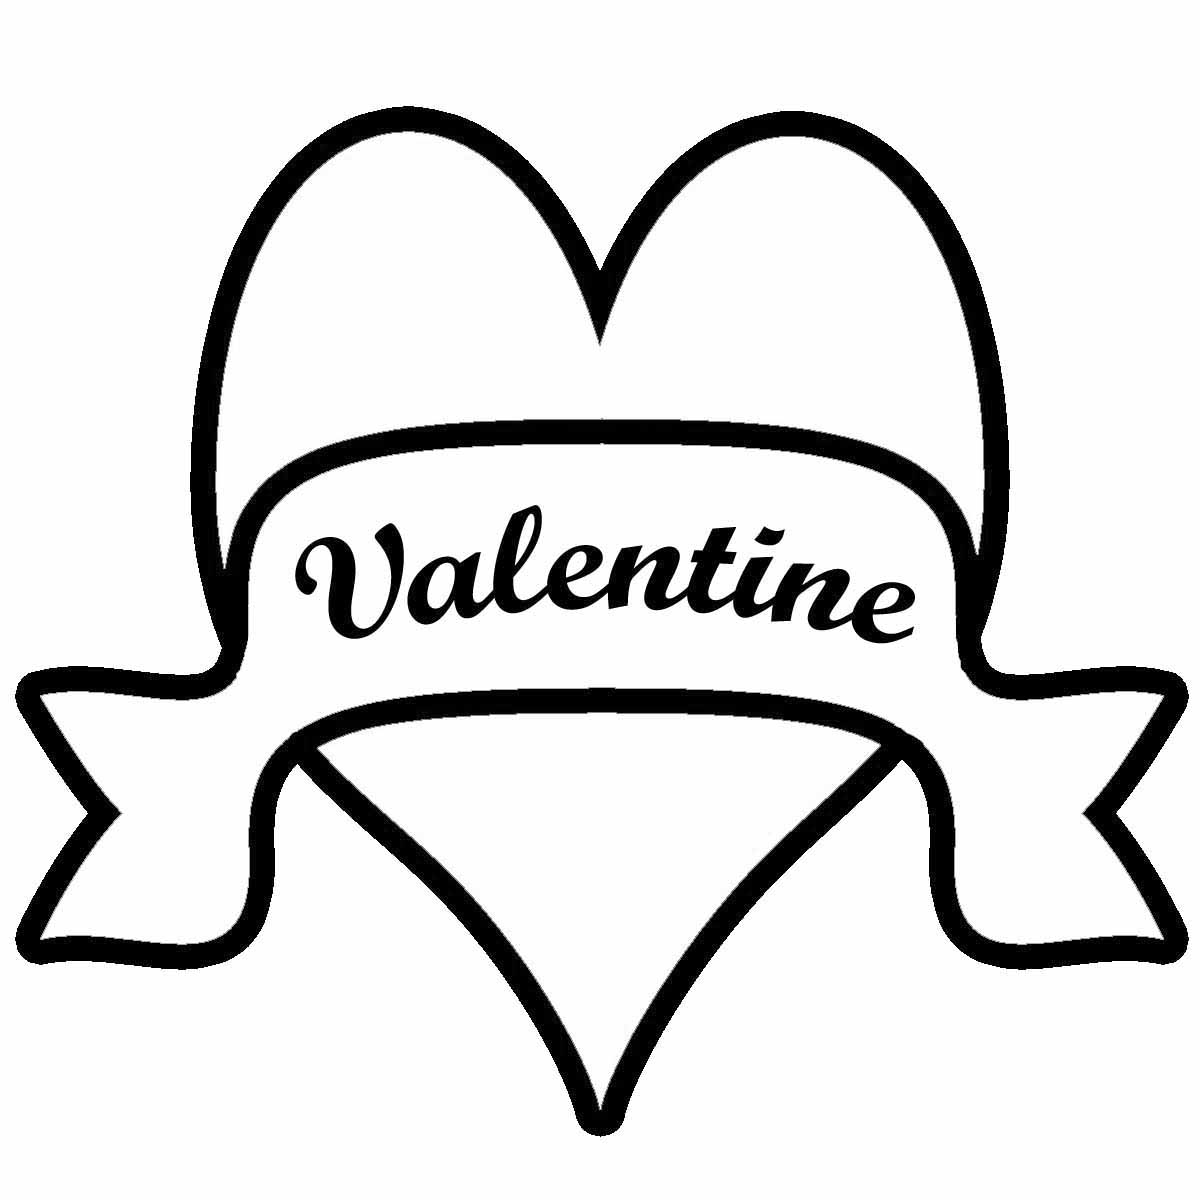 Classroom valentines day black and white clipart.